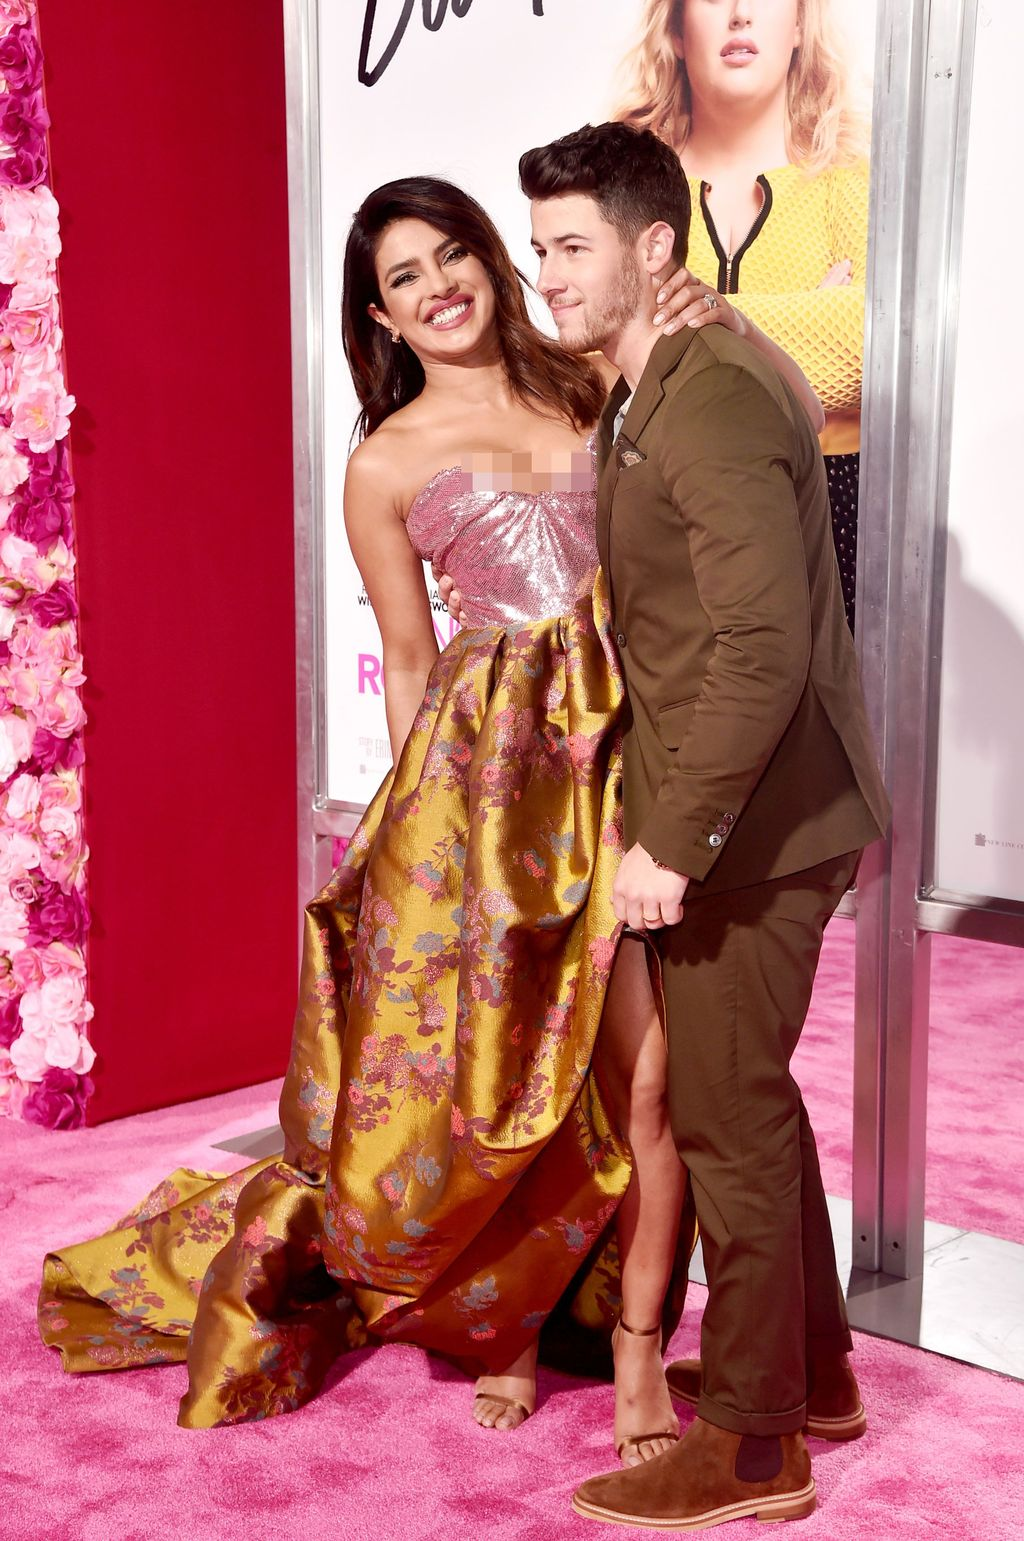 LOS ANGELES, CALIFORNIA - FEBRUARY 11: (L-R) Priyanka Chopra and  Nick Jonas attend the premiere of Warner Bros. Pictures'